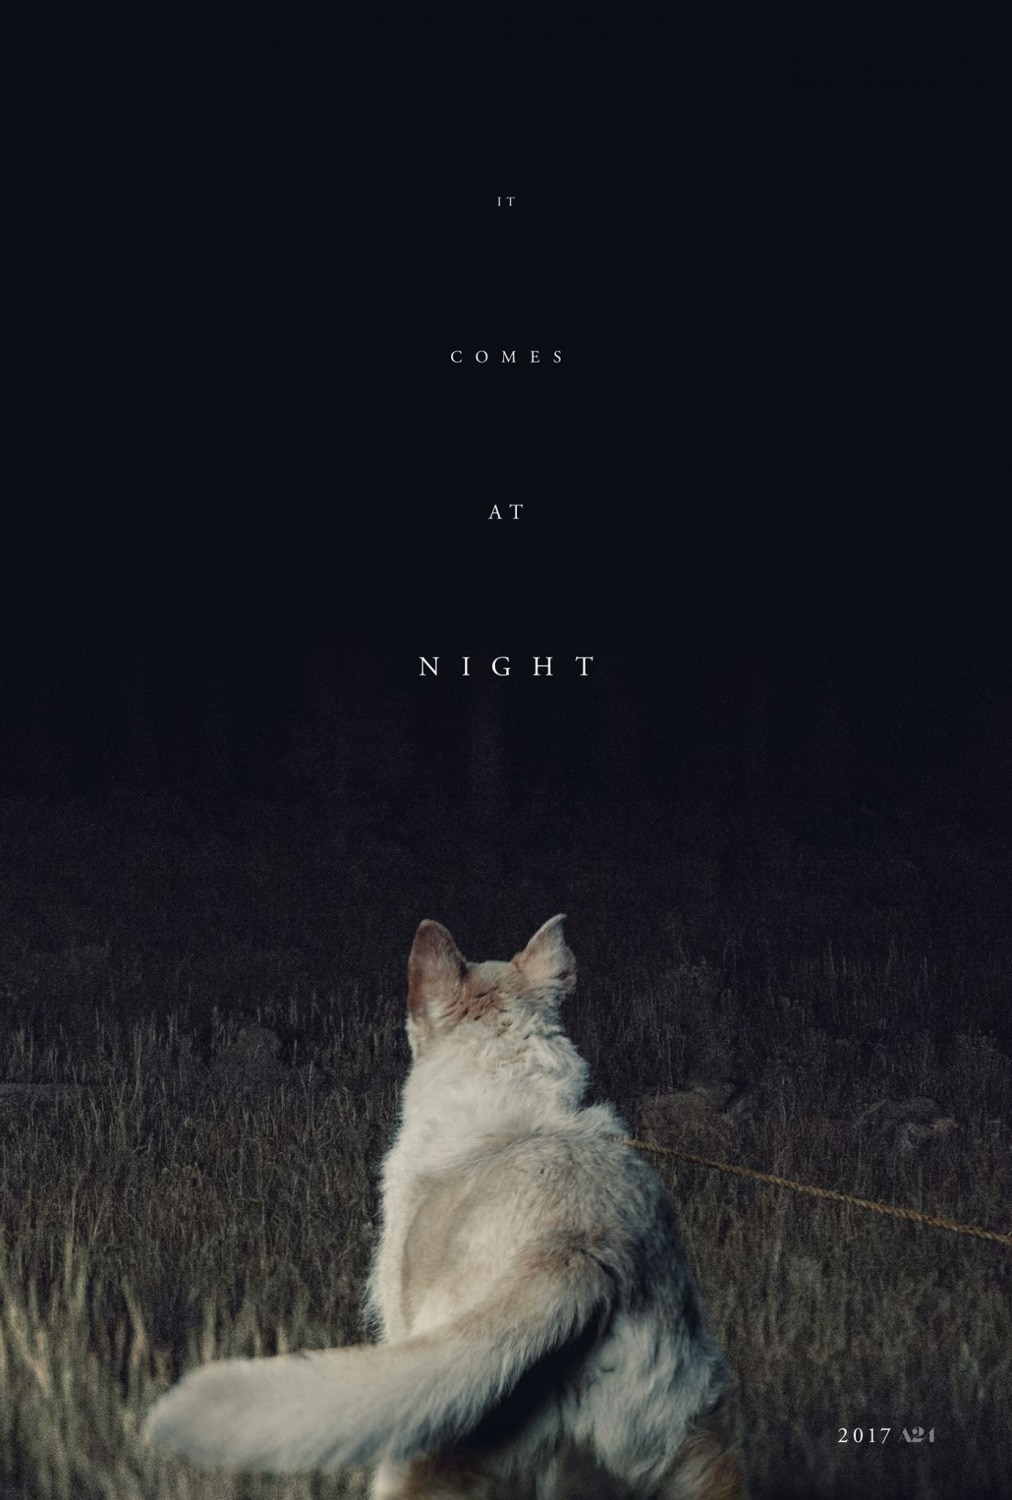 it comes at night - It Comes at Night Thanks to These Three Promo Videos